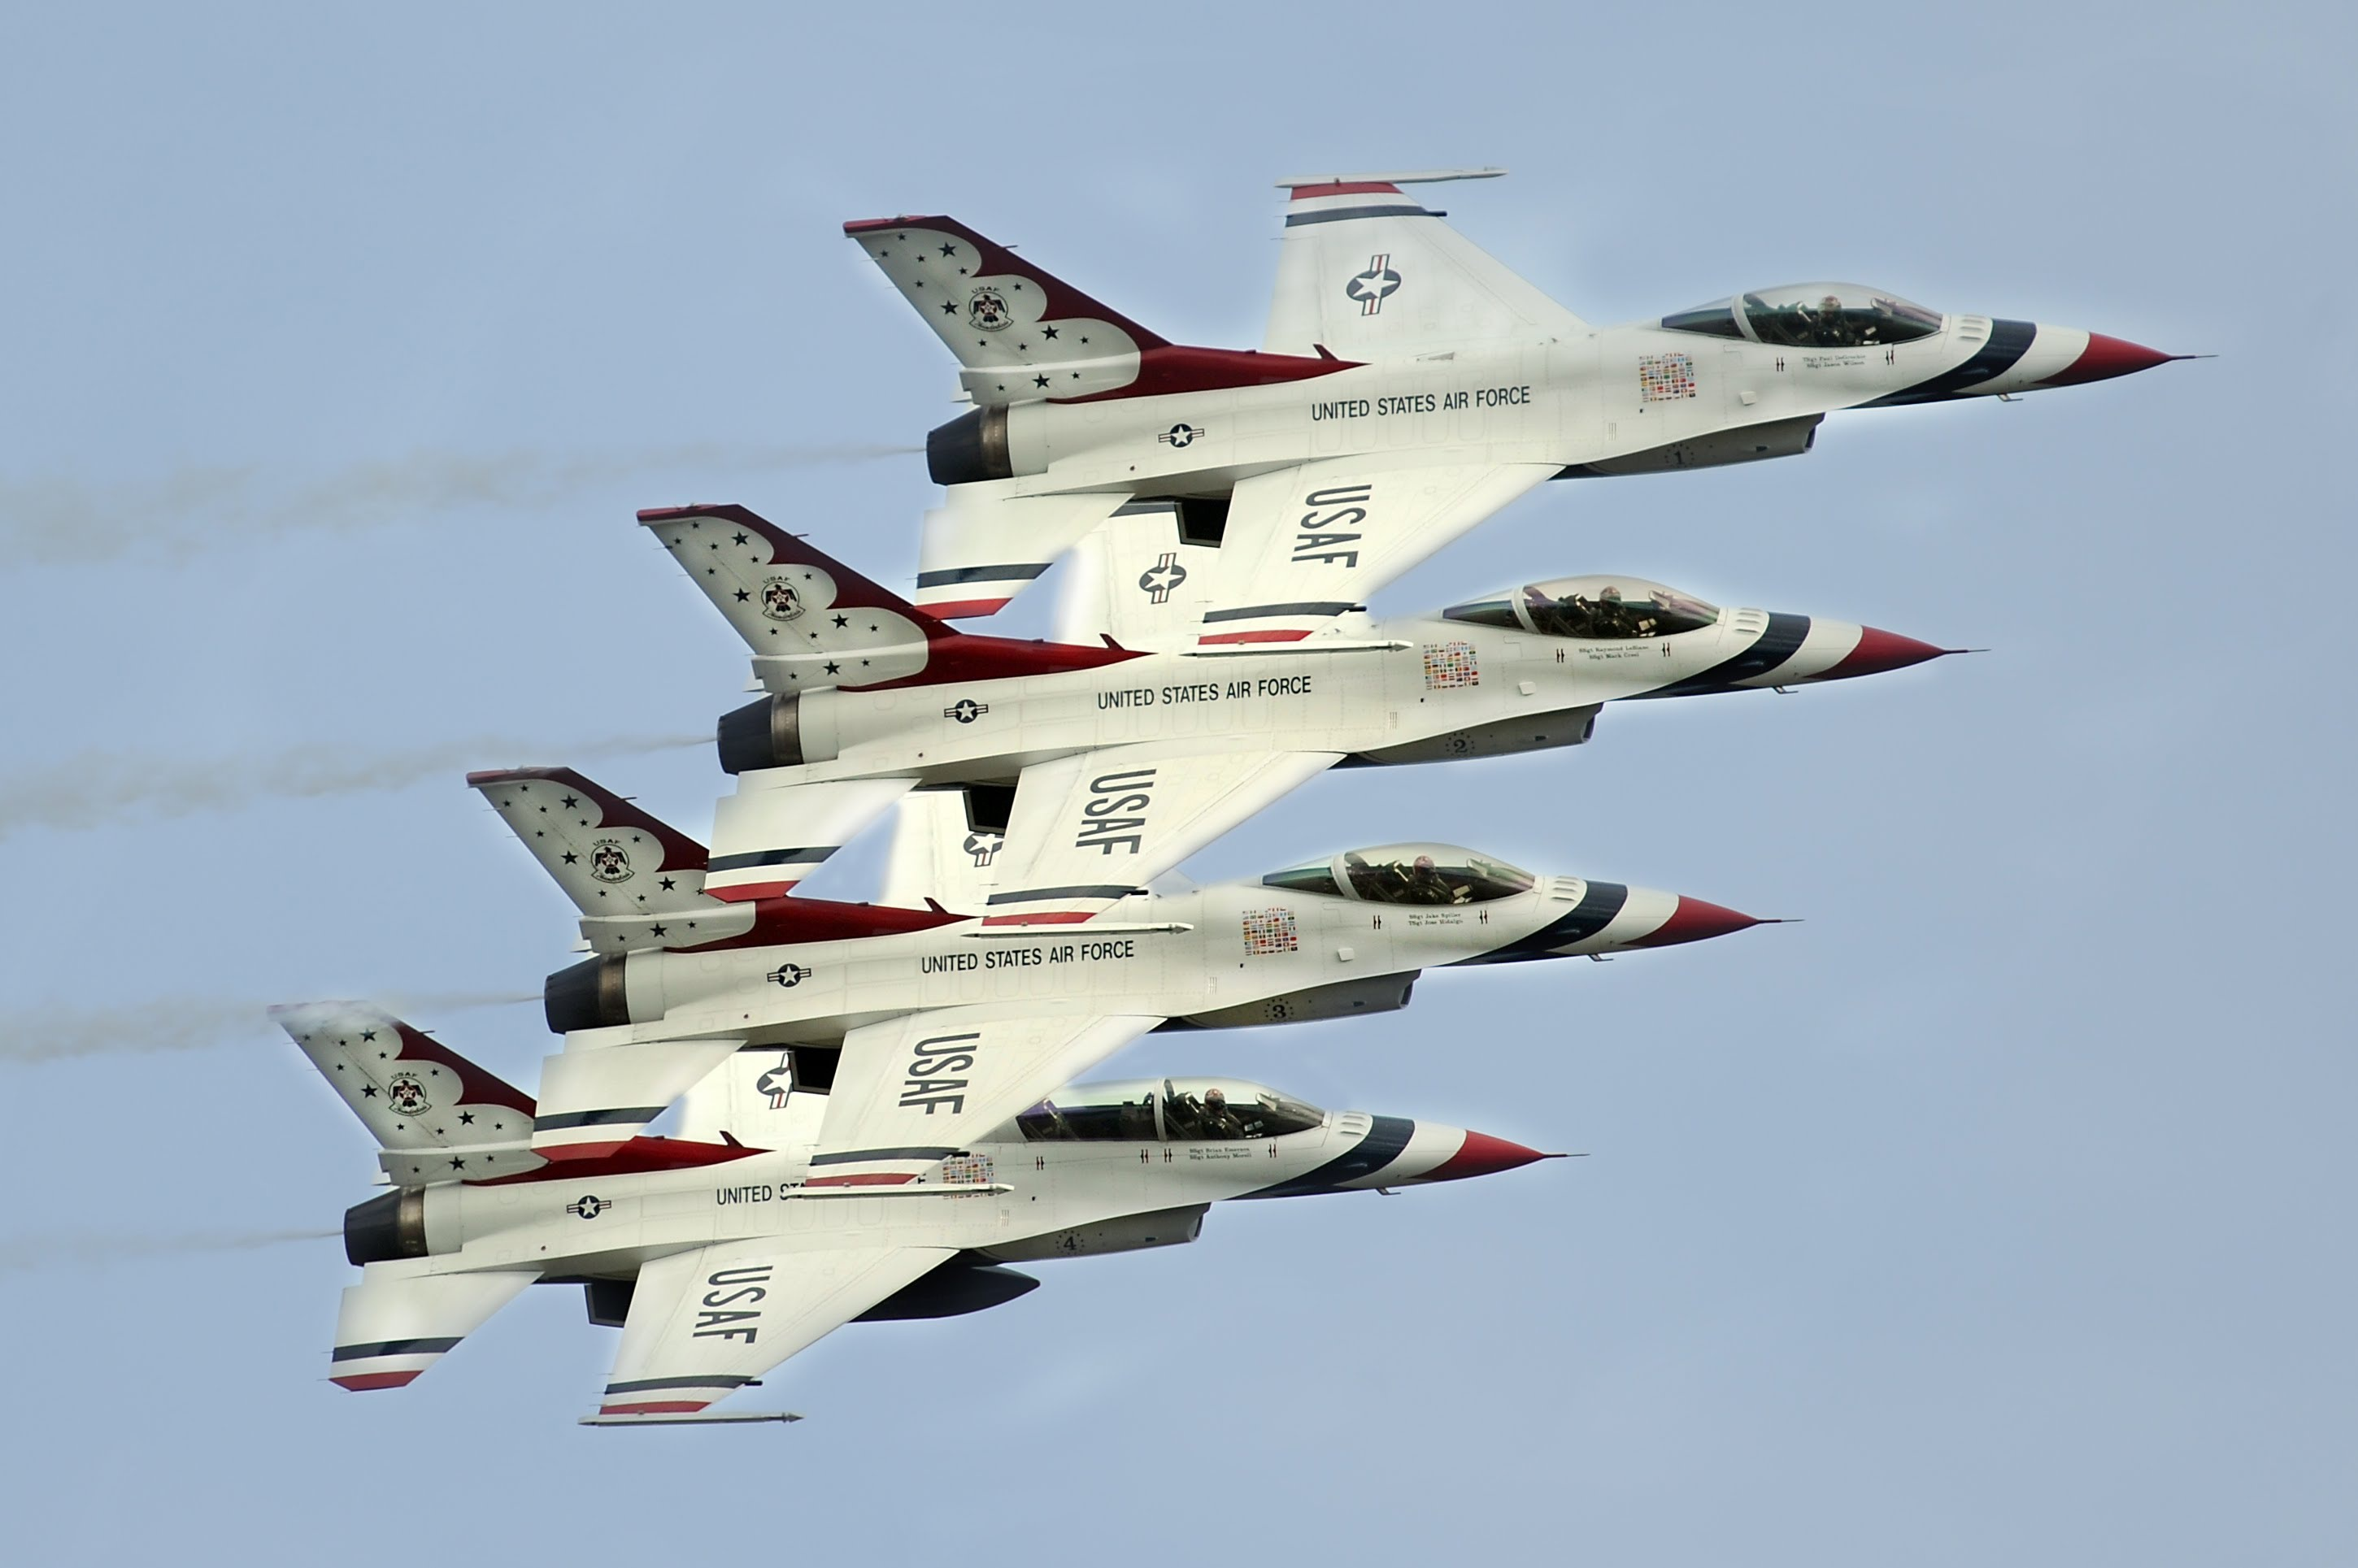 Aircraft General Dynamics F 16 Fighting Falcon Jet Fighter United States Air Force Thunderbirds 2900x1929